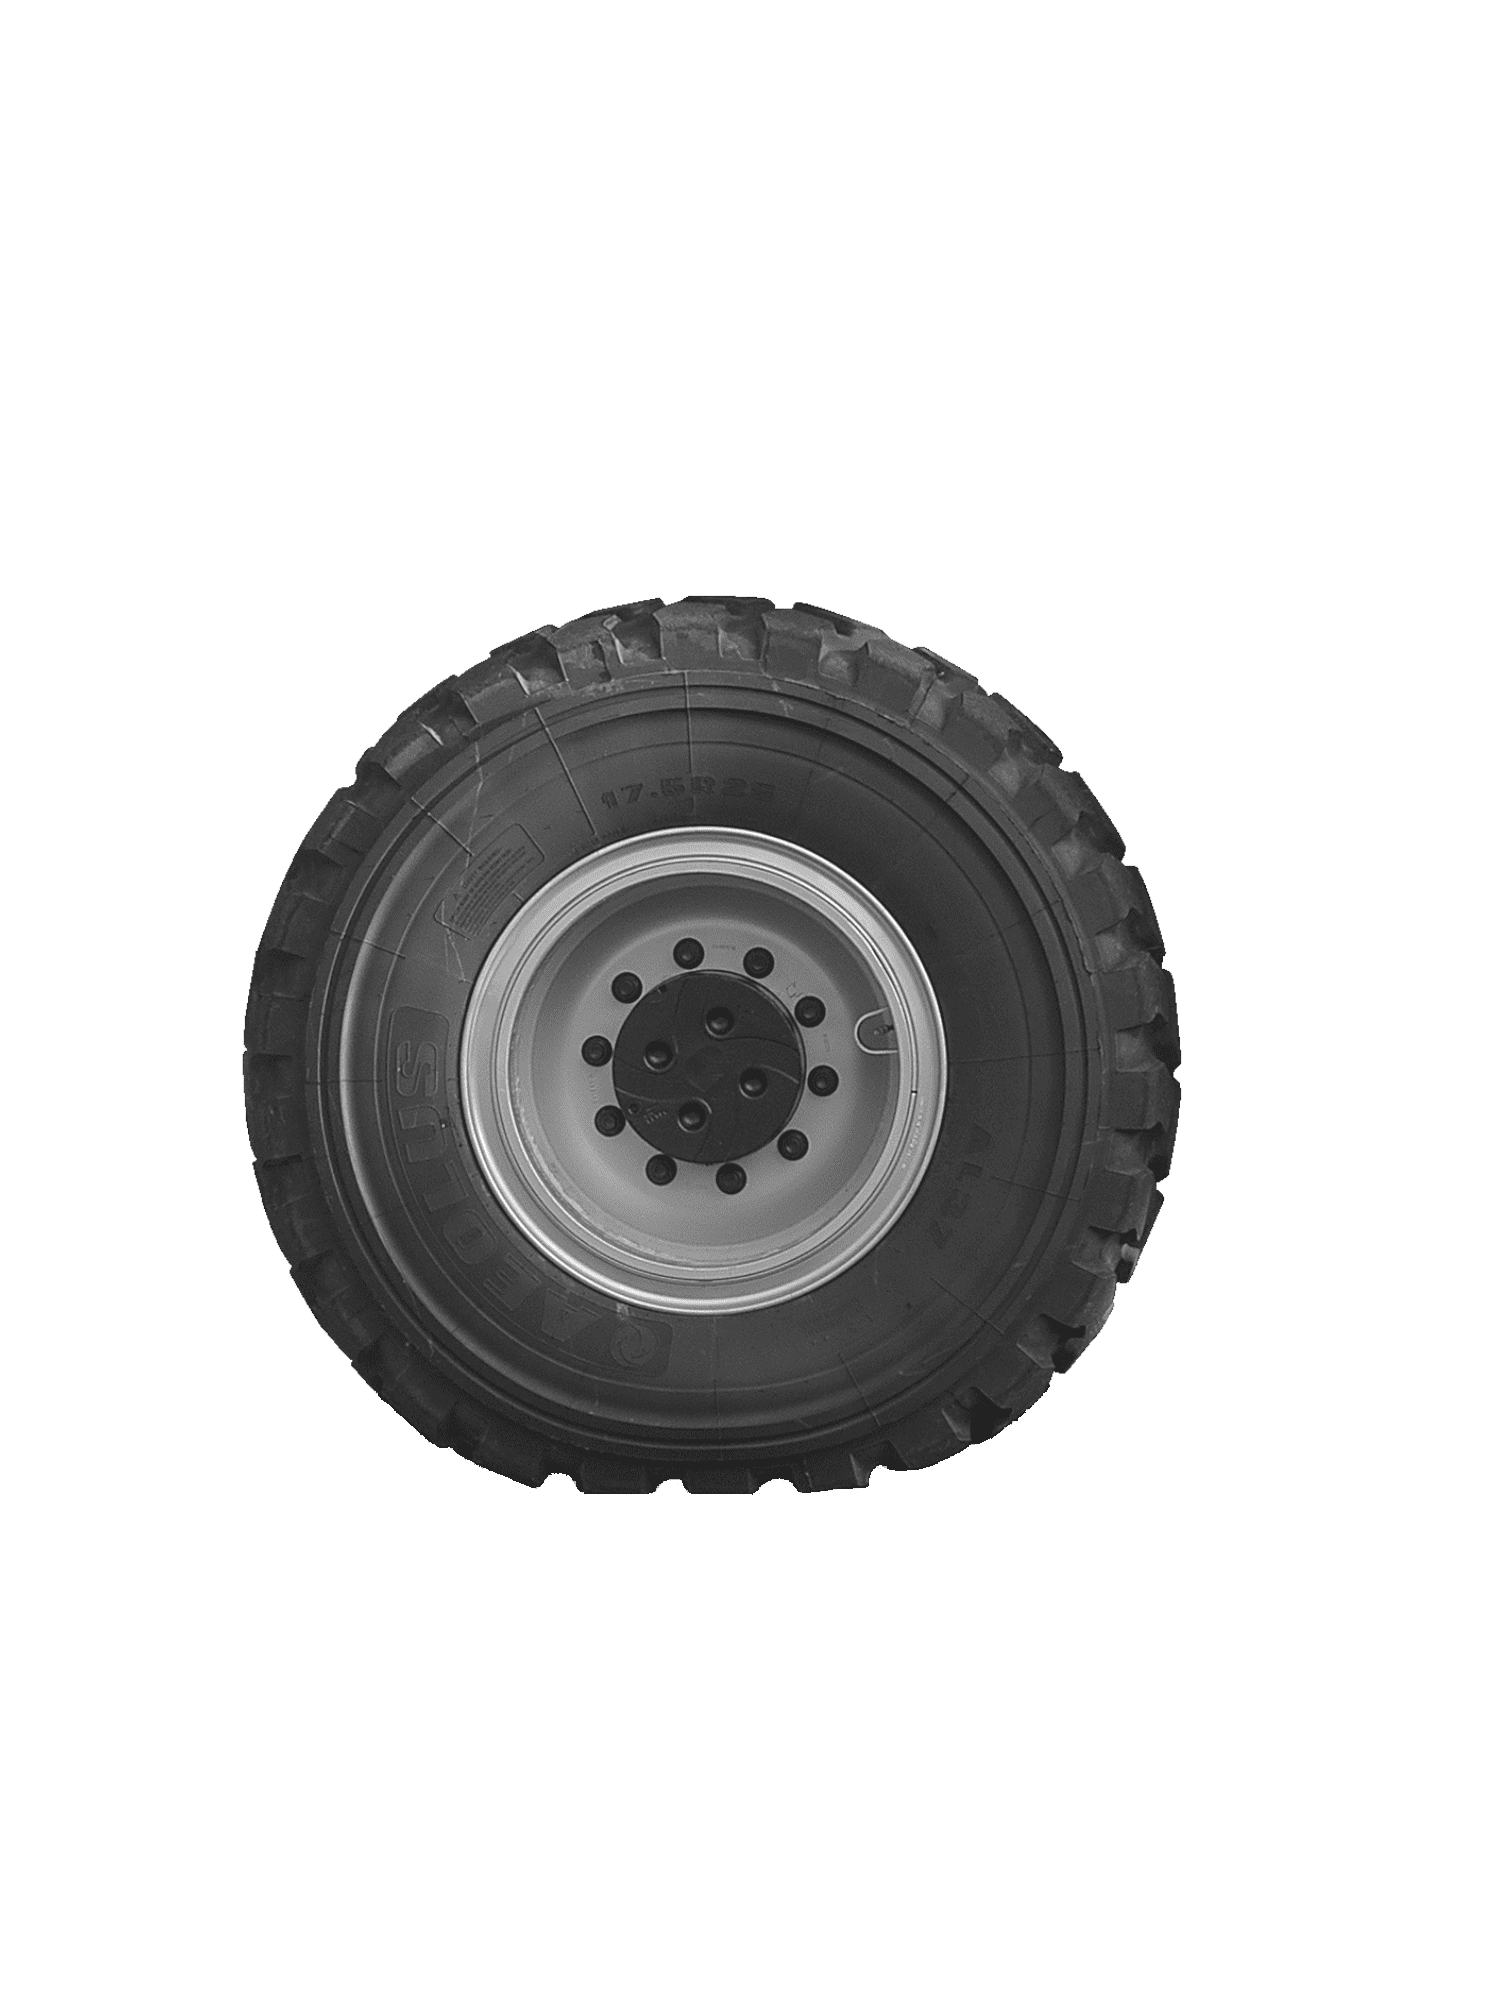 RIGHT SPARE WHEEL FOR RTH 4.18